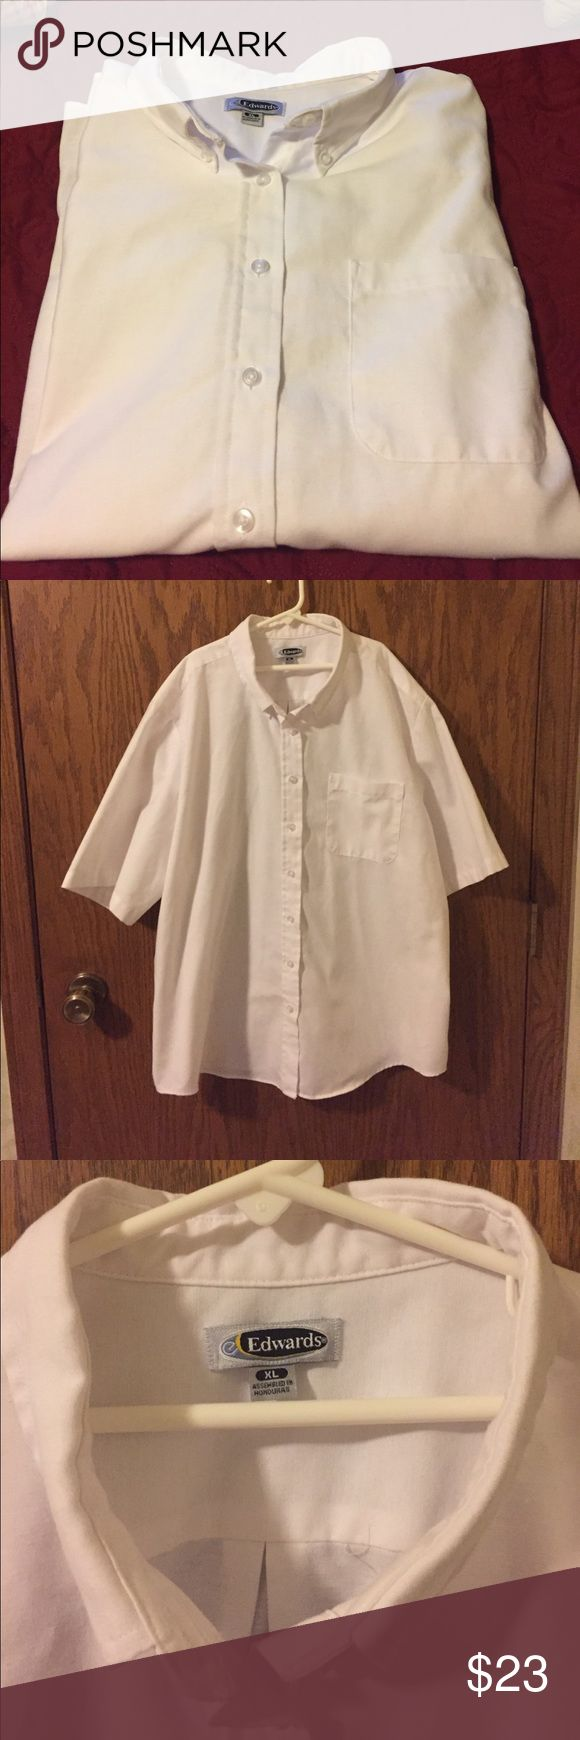 White Oxford Shirt Button down & short-sleeve shirt Edwards Shirts Dress Shirts